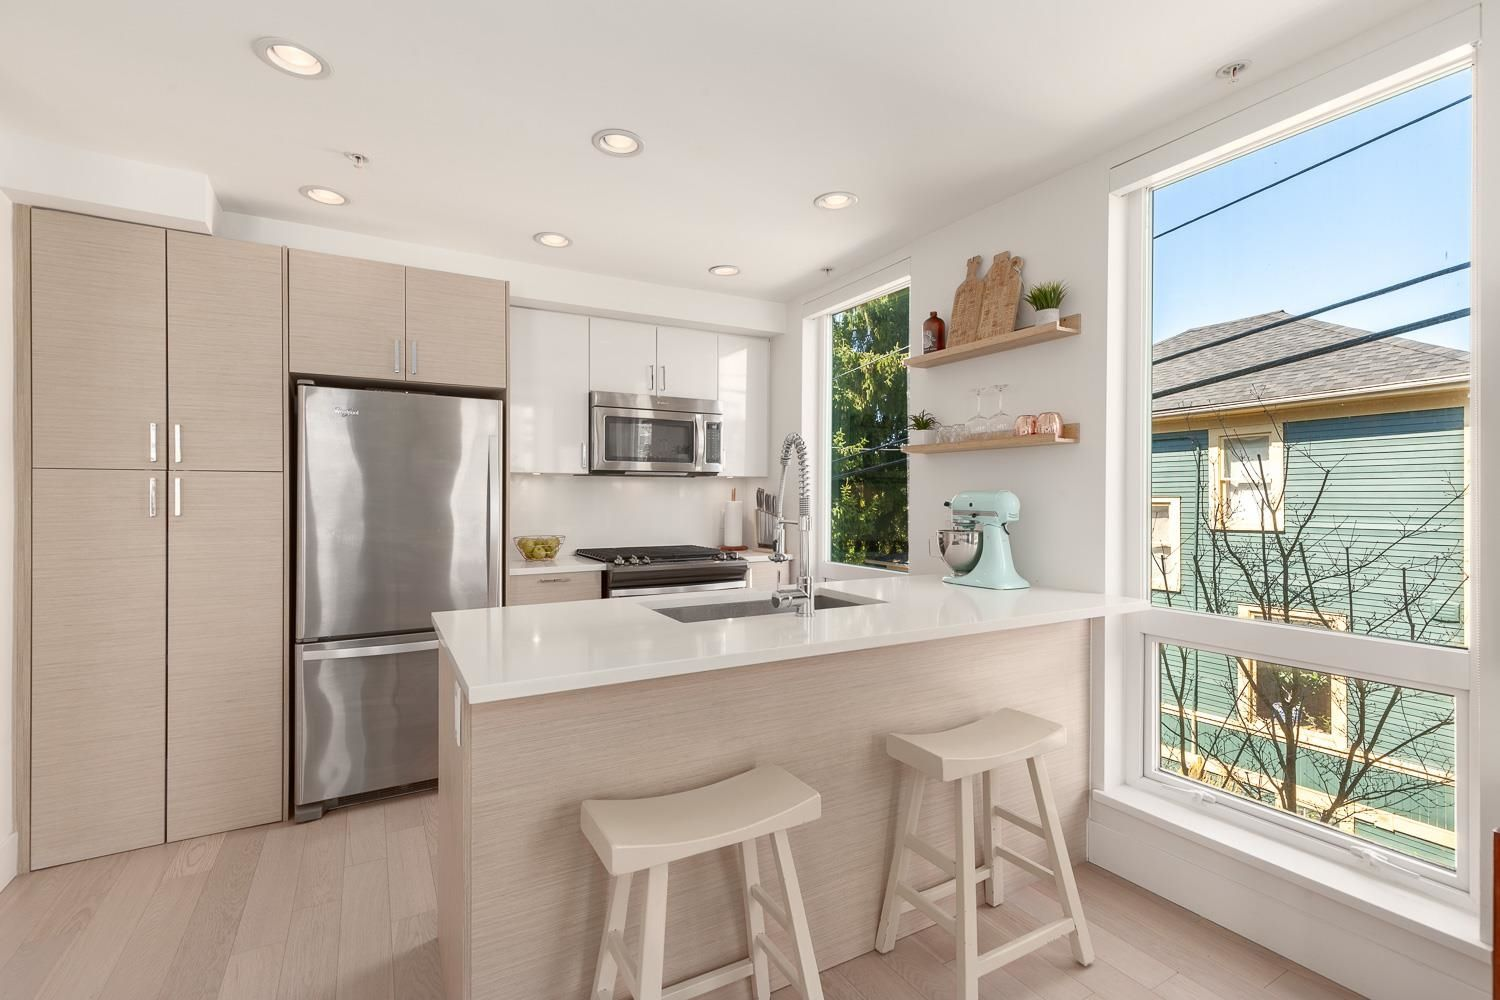 """Main Photo: 4 1411 E 1ST Avenue in Vancouver: Grandview Woodland Townhouse for sale in """"Grandview Cascades"""" (Vancouver East)  : MLS®# R2614894"""